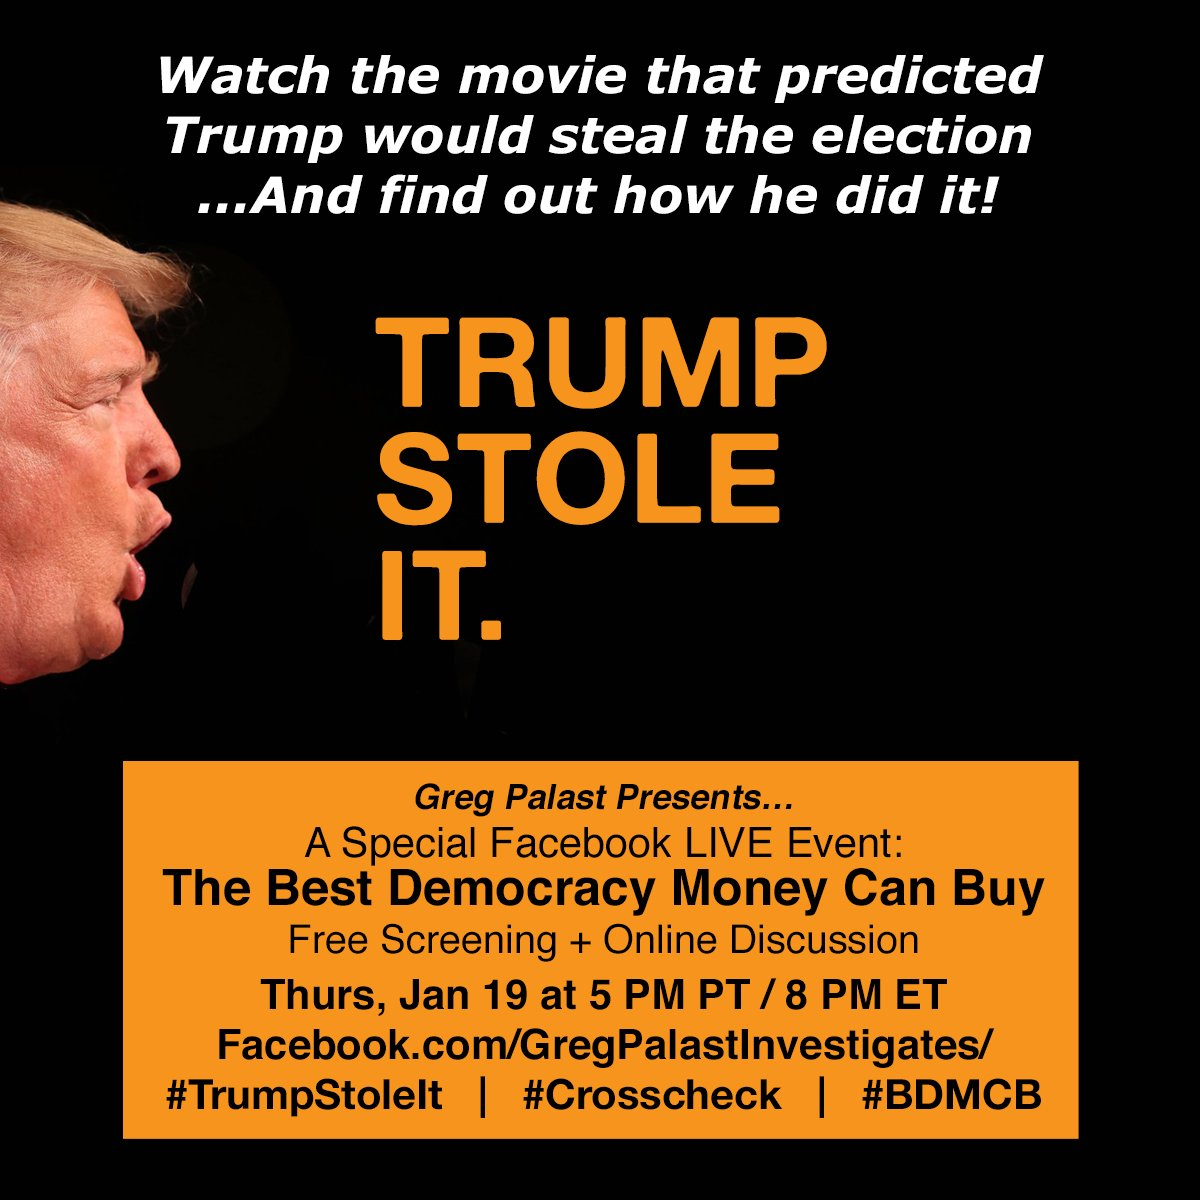 #TrumpStoleIt: Join us on Inauguration Eve for a Special Facebook LIVE event!  https://www. facebook.com/GregPalastInve stigates/videos/10154917384607128/ &nbsp; …  #Trump #ElectionFraud #TheResistance<br>http://pic.twitter.com/JkOQsVas99